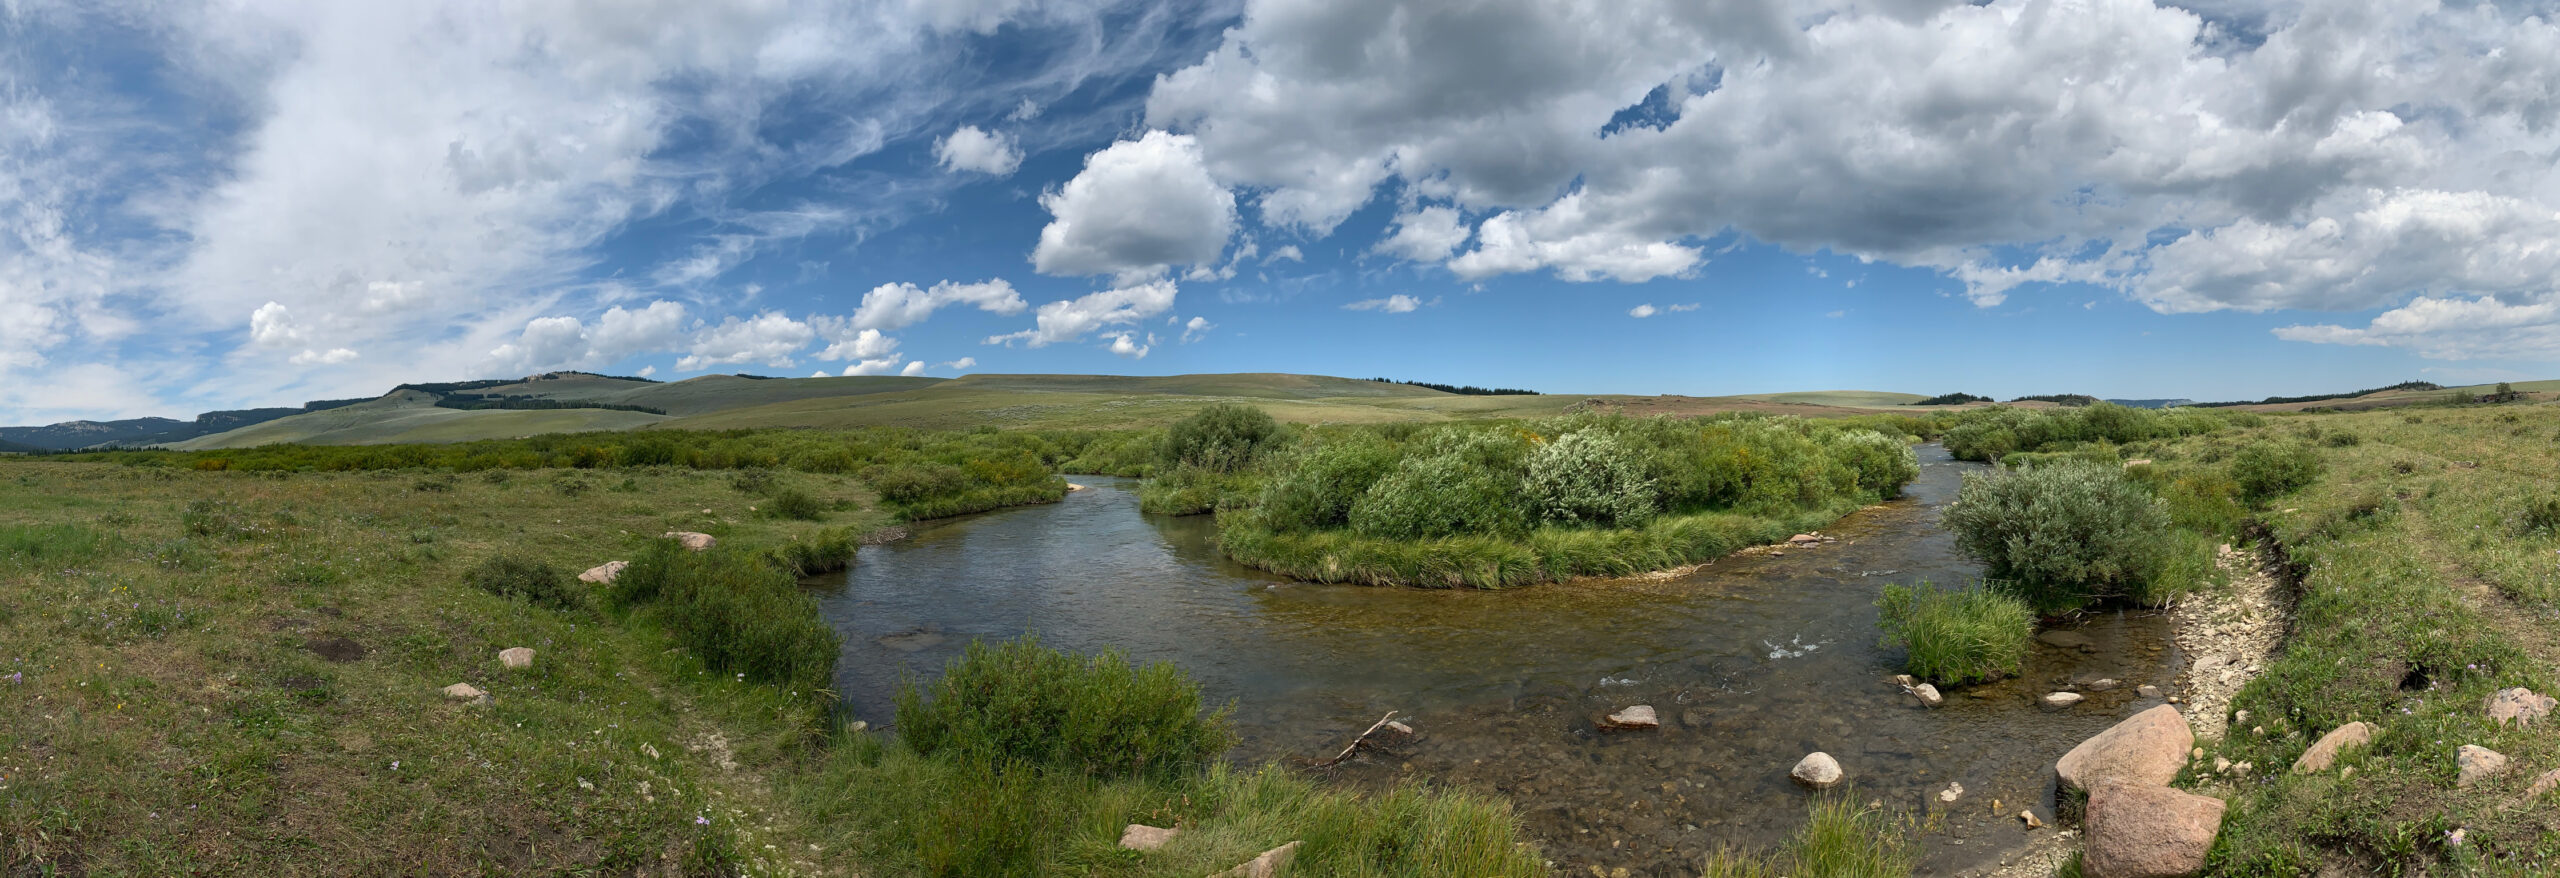 The North Fork of the Tongue River near Burgess Junction